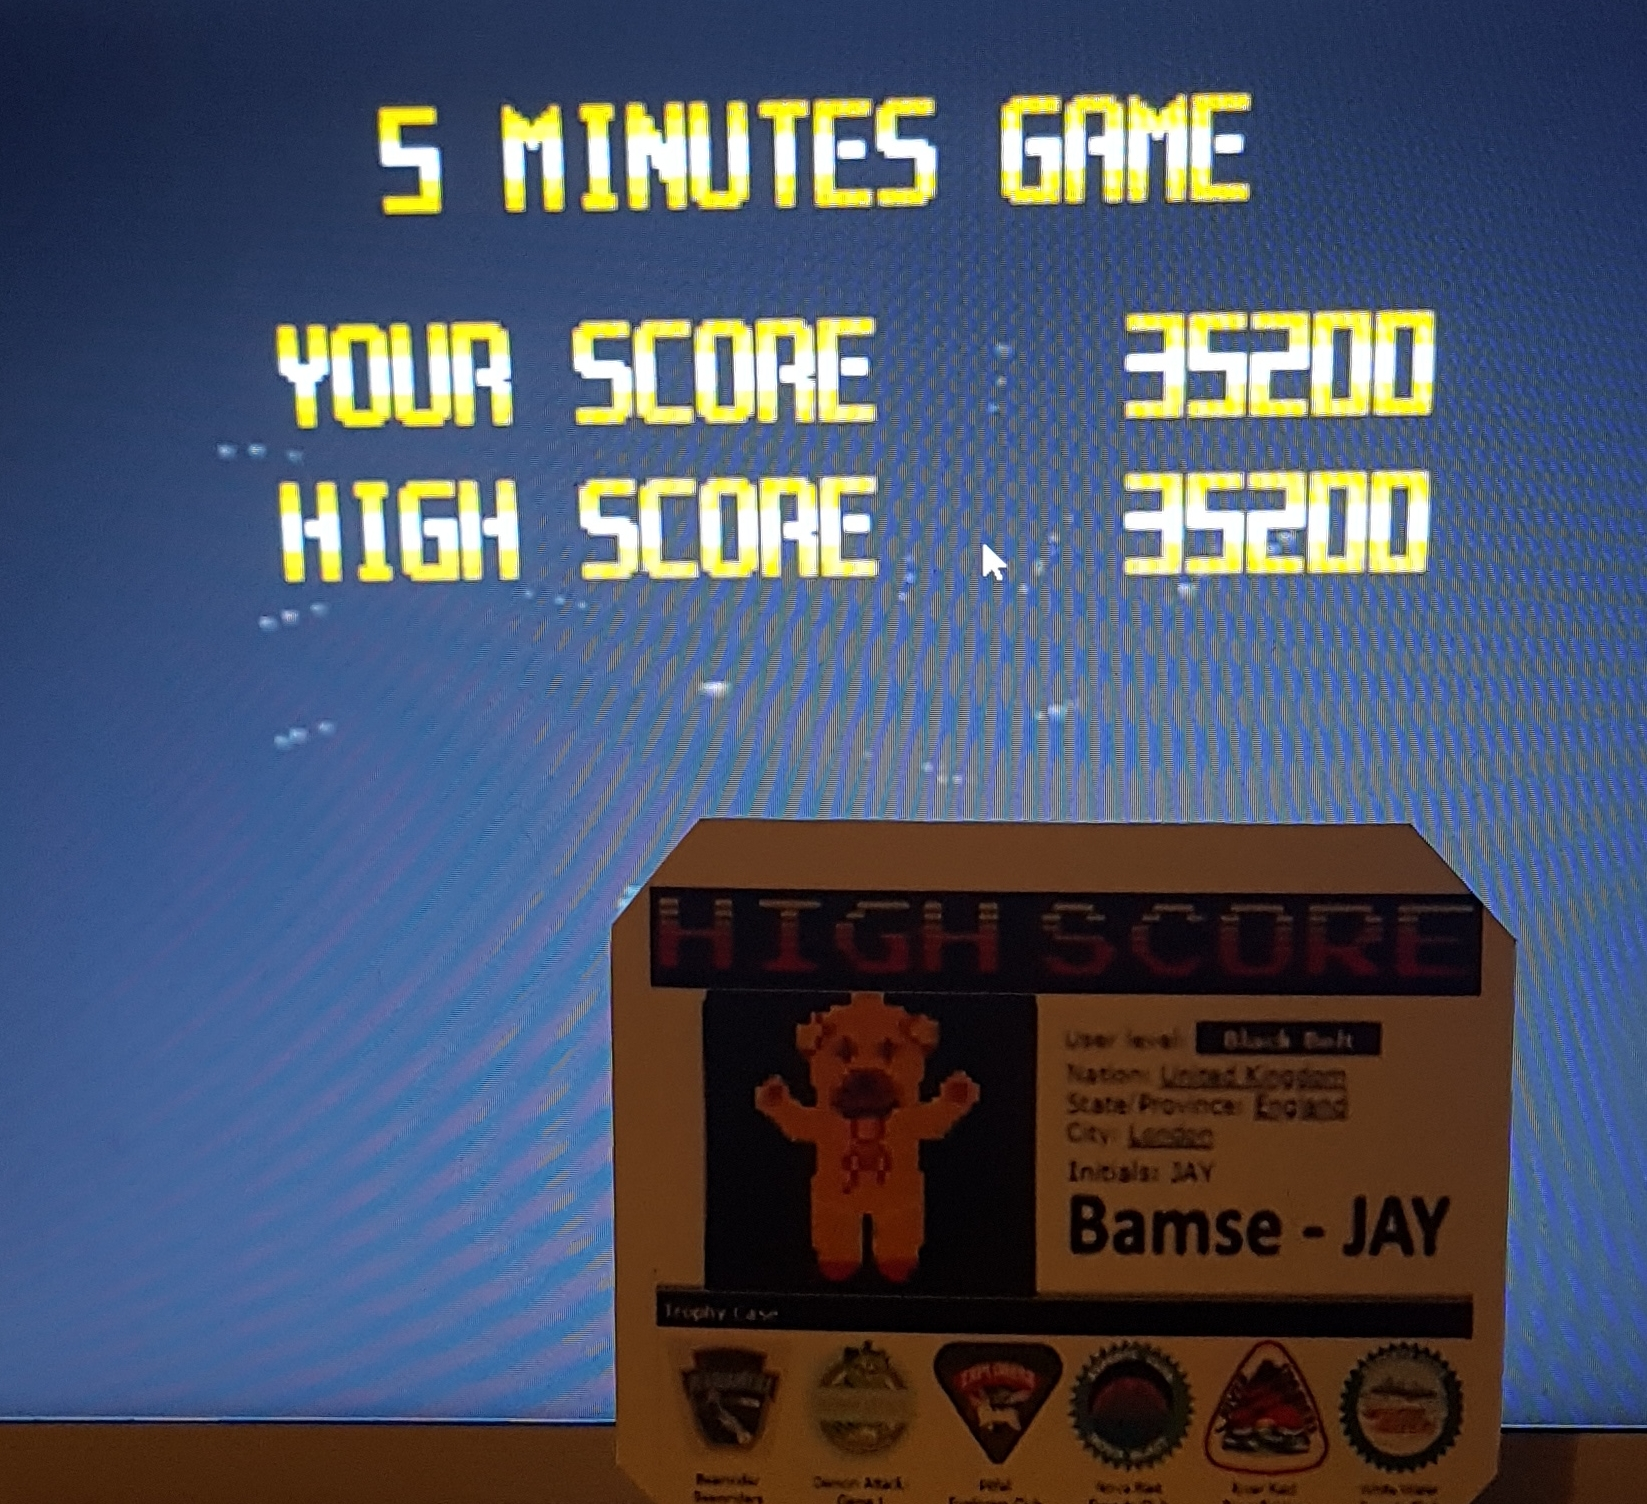 Bamse: Super Star Soldier [5 Minutes Game] (TurboGrafx-16/PC Engine Emulated) 35,200 points on 2019-10-18 15:06:06